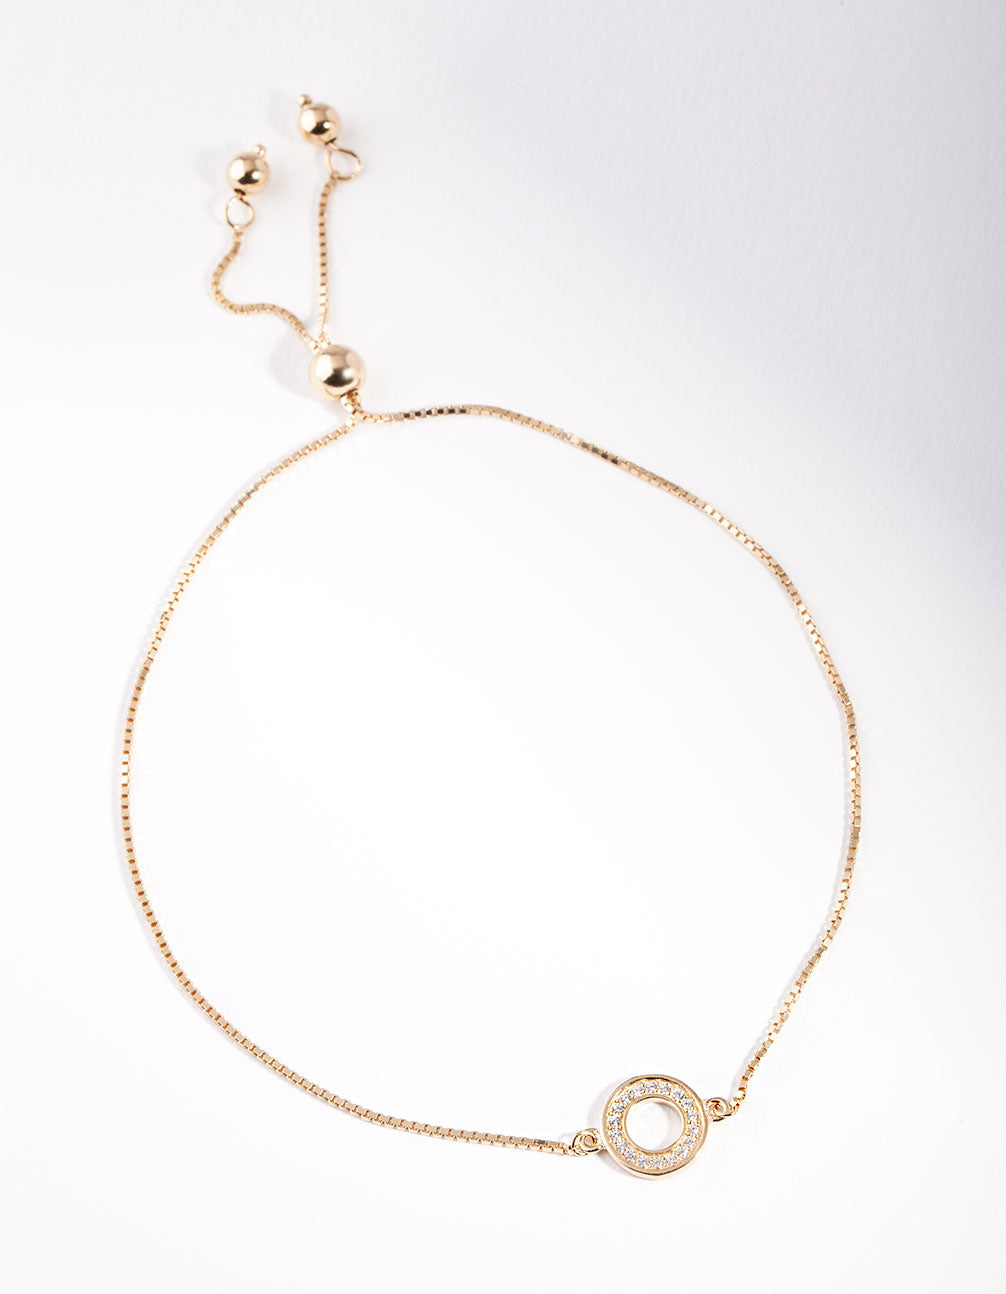 Gold Plated Sterling Silver Open Circle Toggle Bracelet